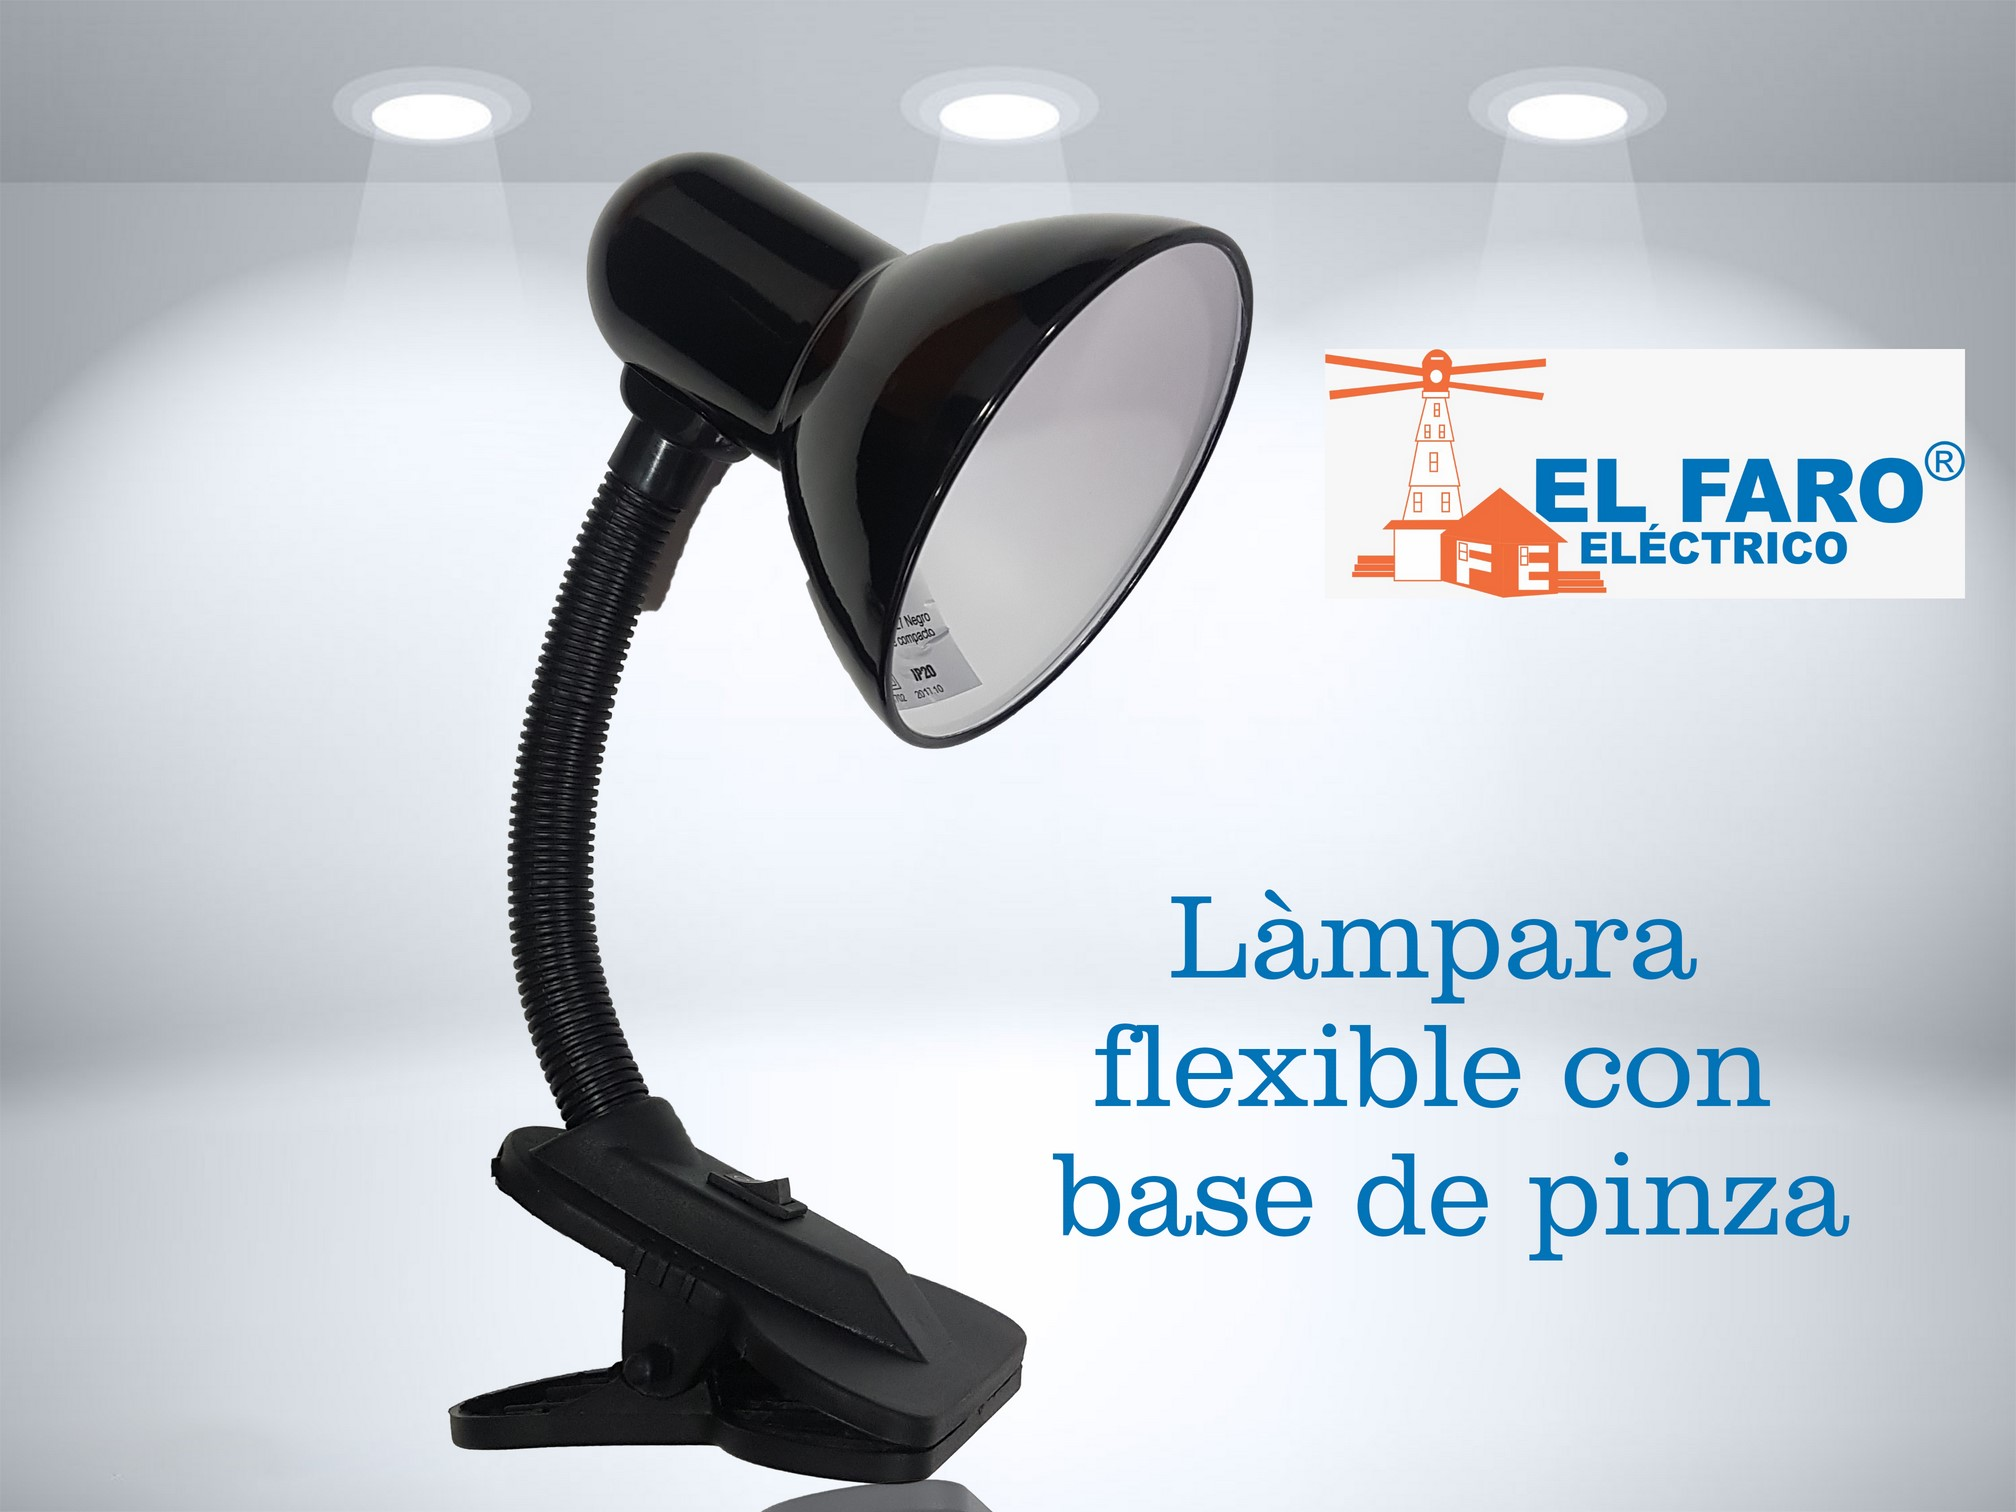 Lámpara flexible con base de pinza